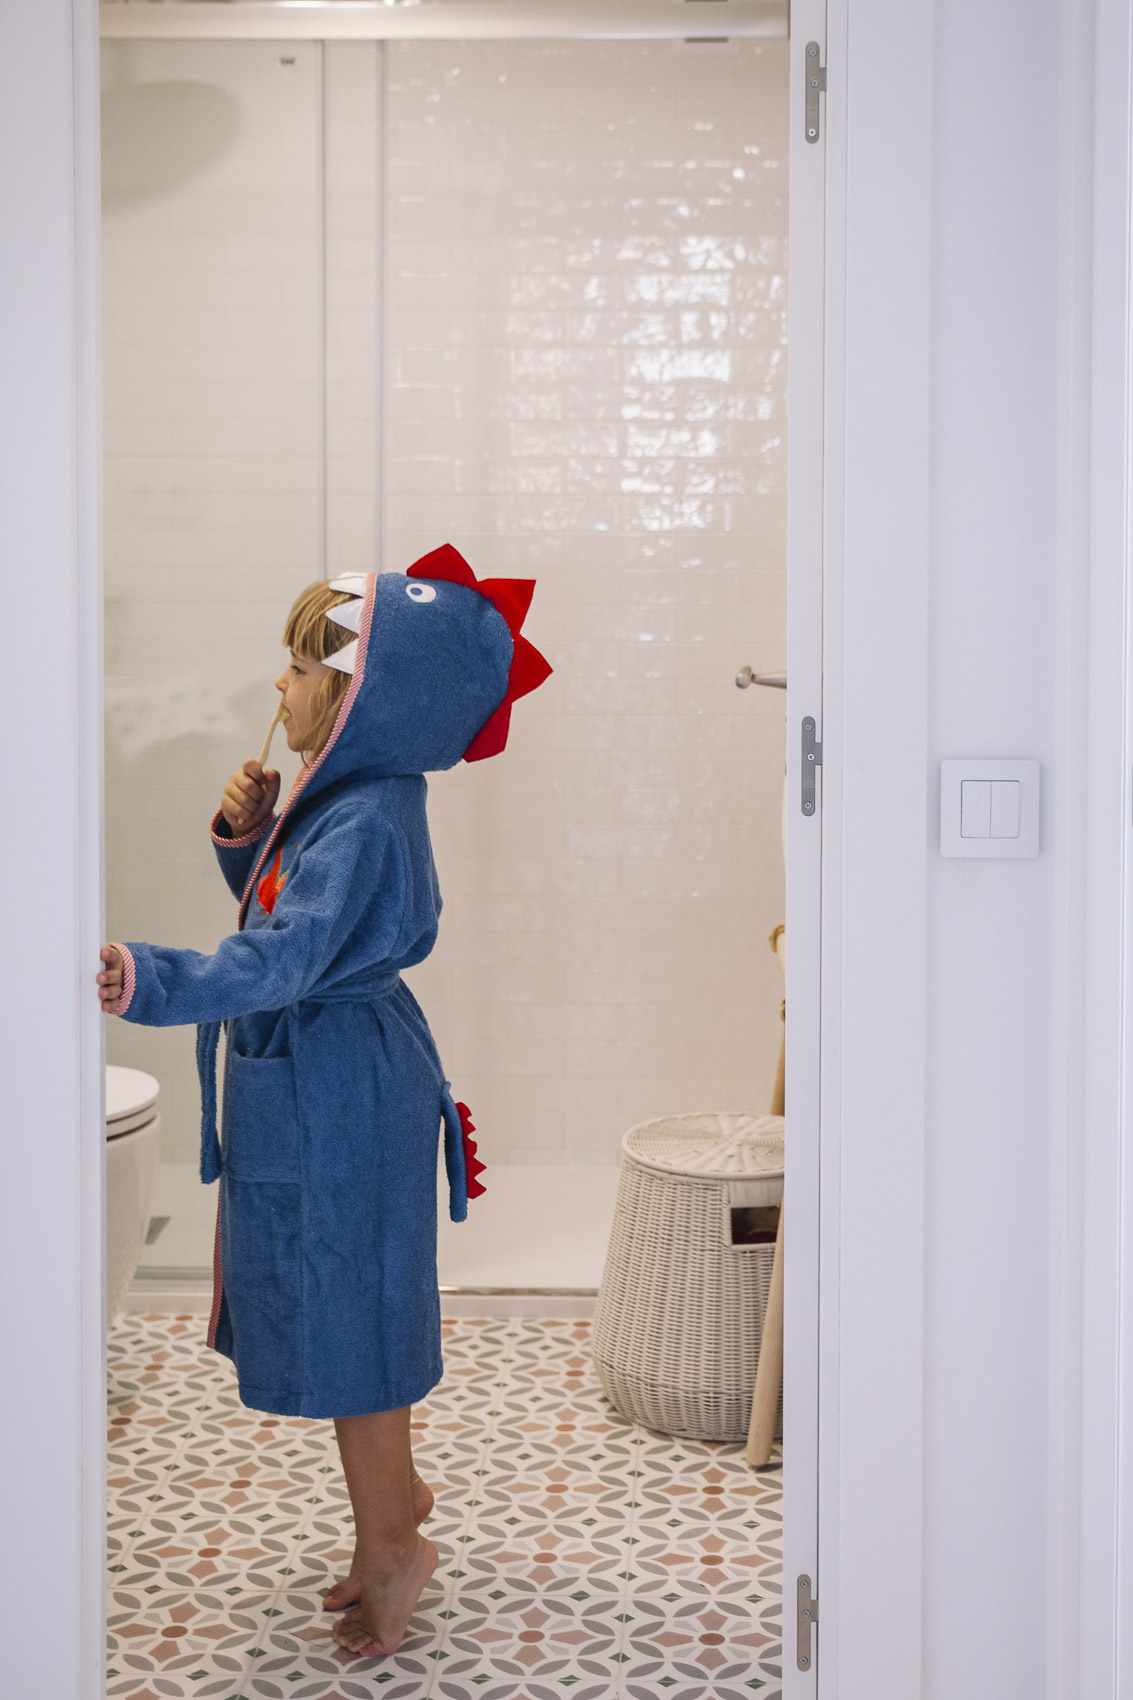 Lookbook Mini Home: Hora del baño